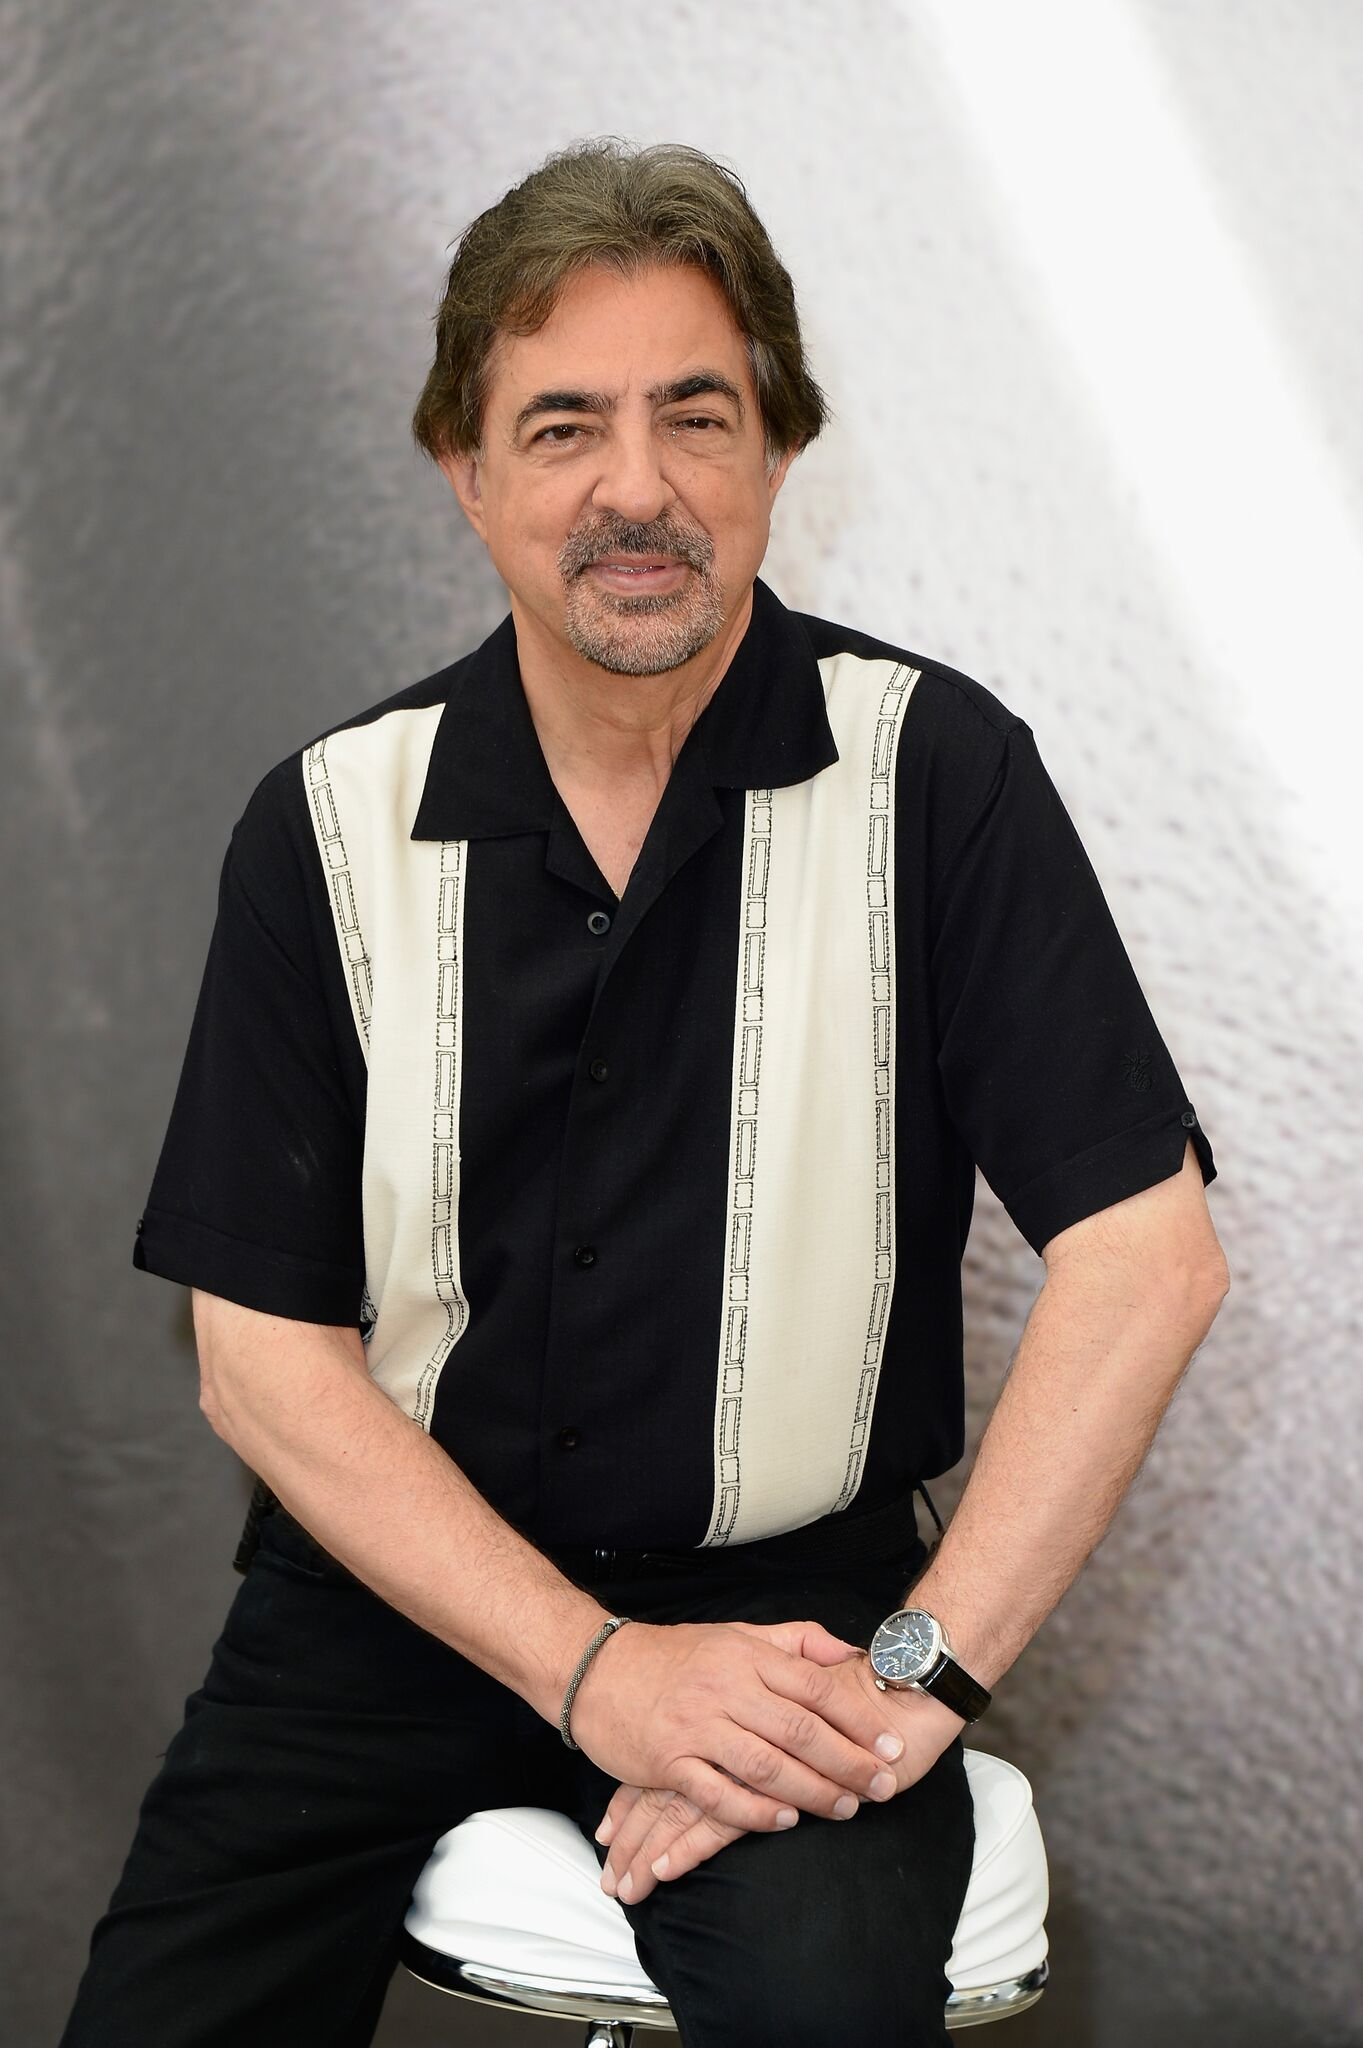 Joe Mantegna poses at a photocall during the 53rd Monte Carlo TV Festival | Getty Images